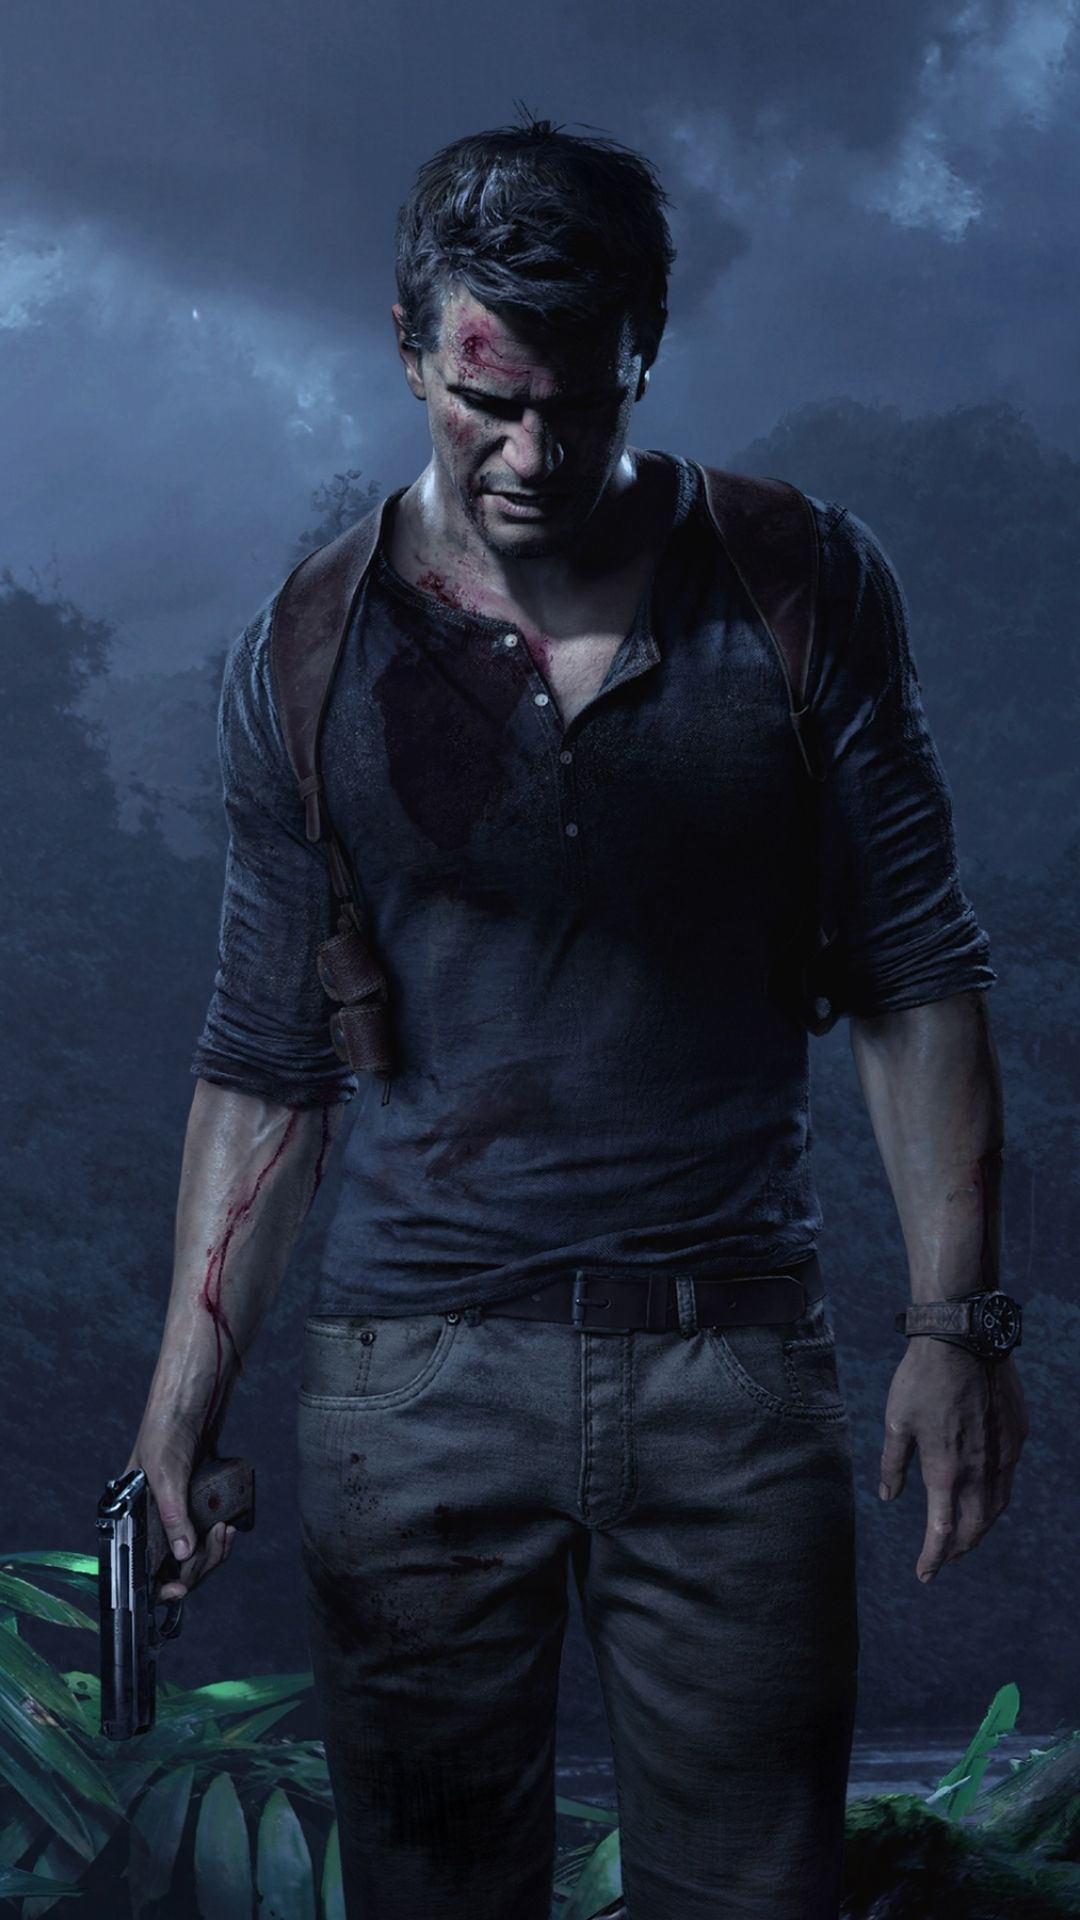 Video Game Uncharted 4 A Thief S End Uncharted Mobile Wallpaper Uncharted Game Uncharted Nathan Drake